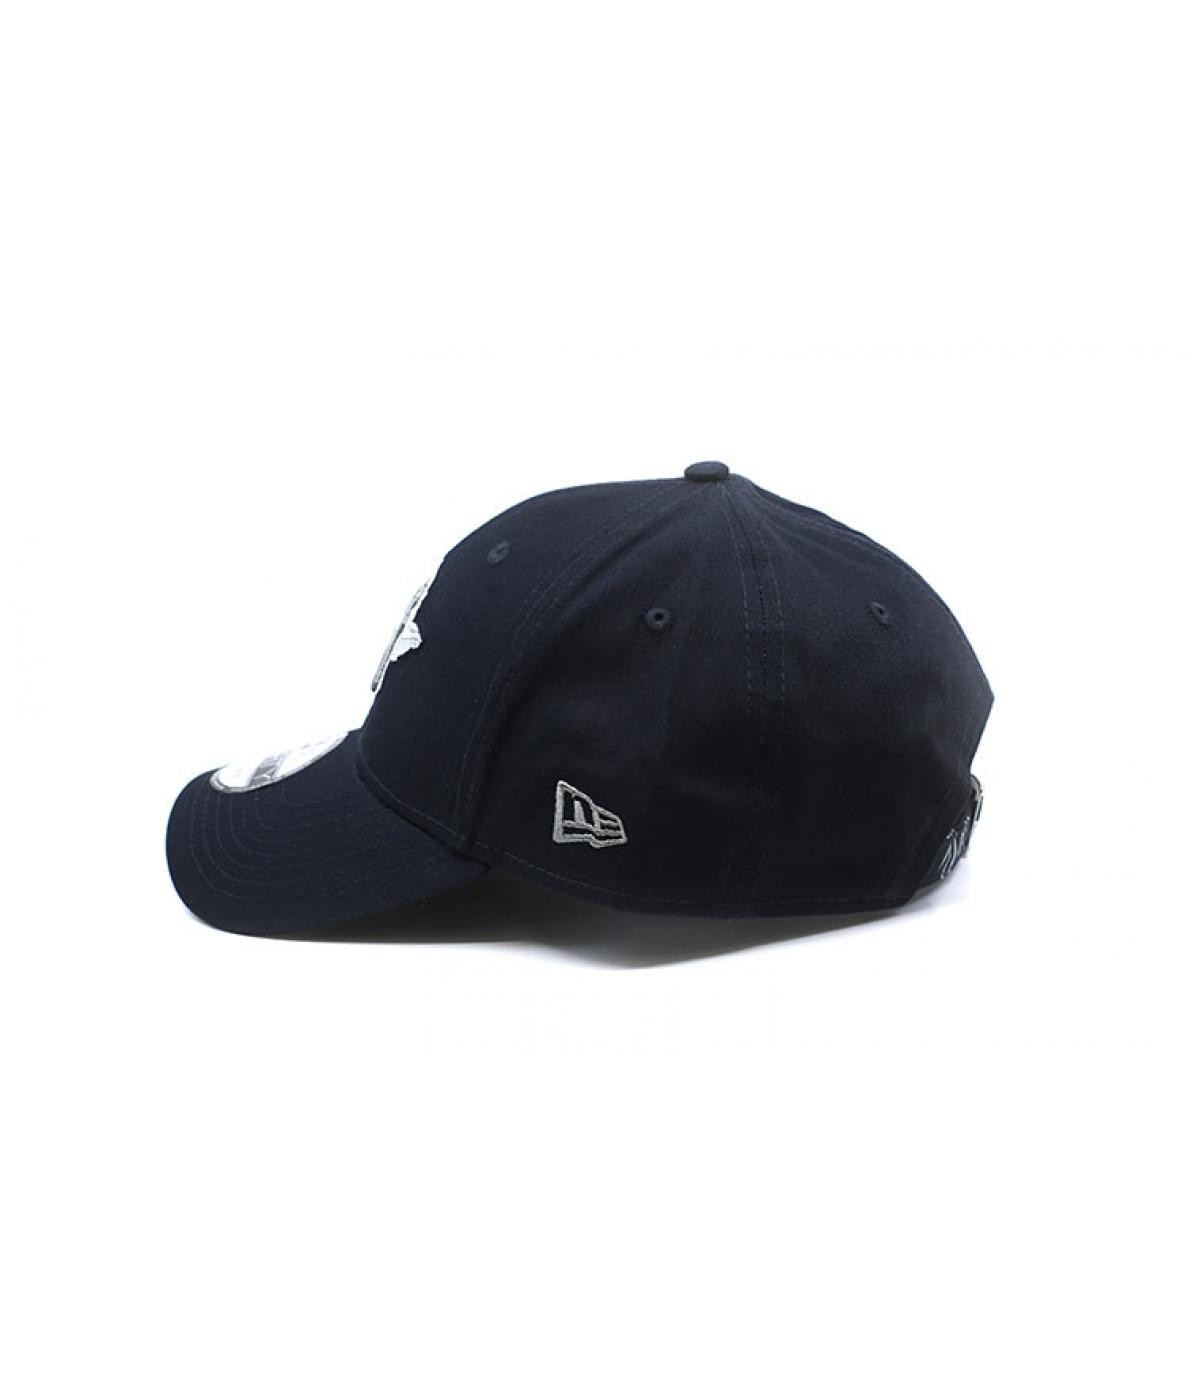 Détails Casquette MLB Light Weight NY 9Forty navy gray - image 4